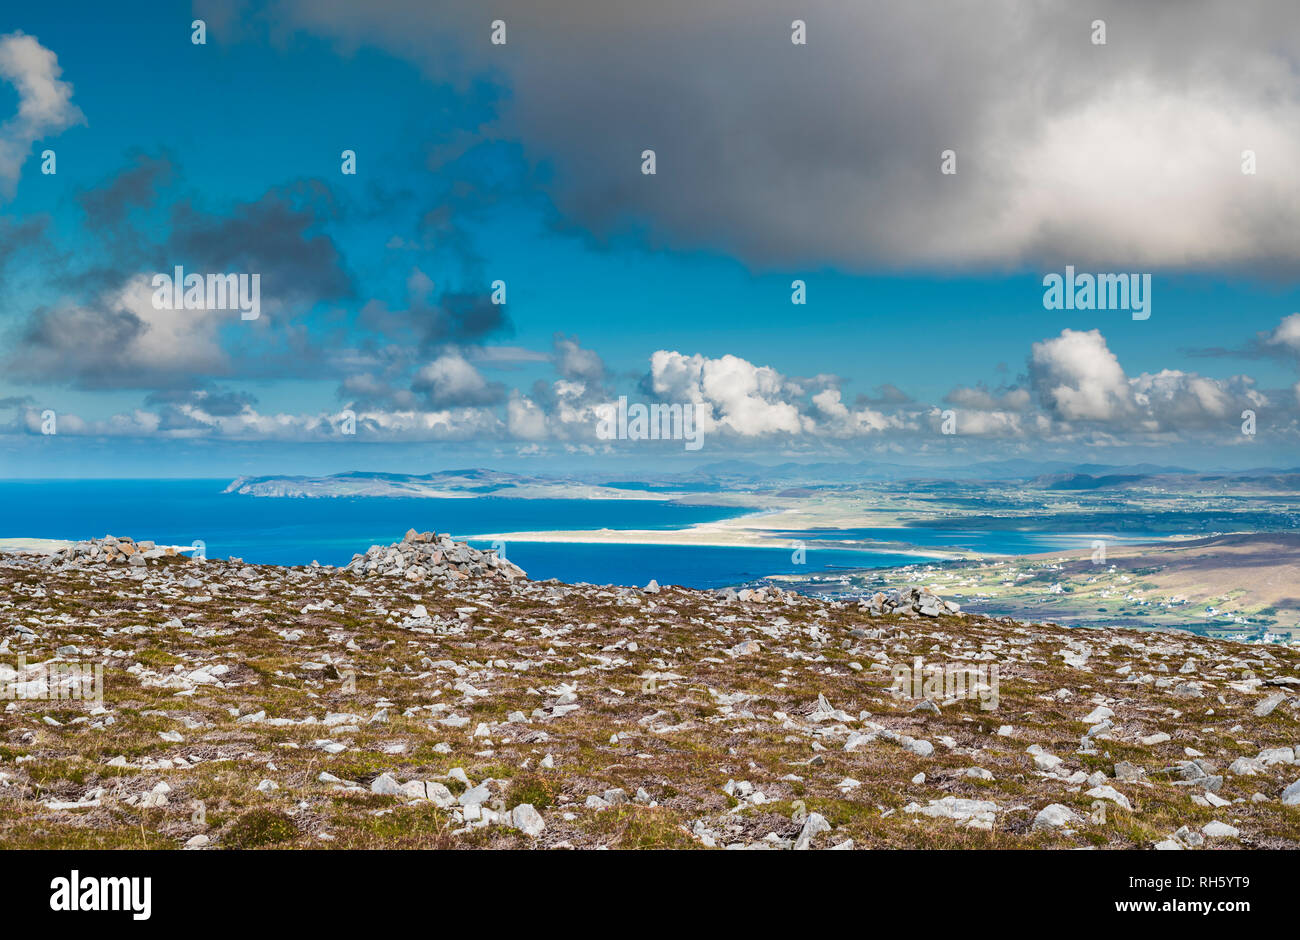 View eastwards from high on Cnoc Fola (Knockfola) near Bloody Foreland, County Donegal, Ireland. - Stock Image